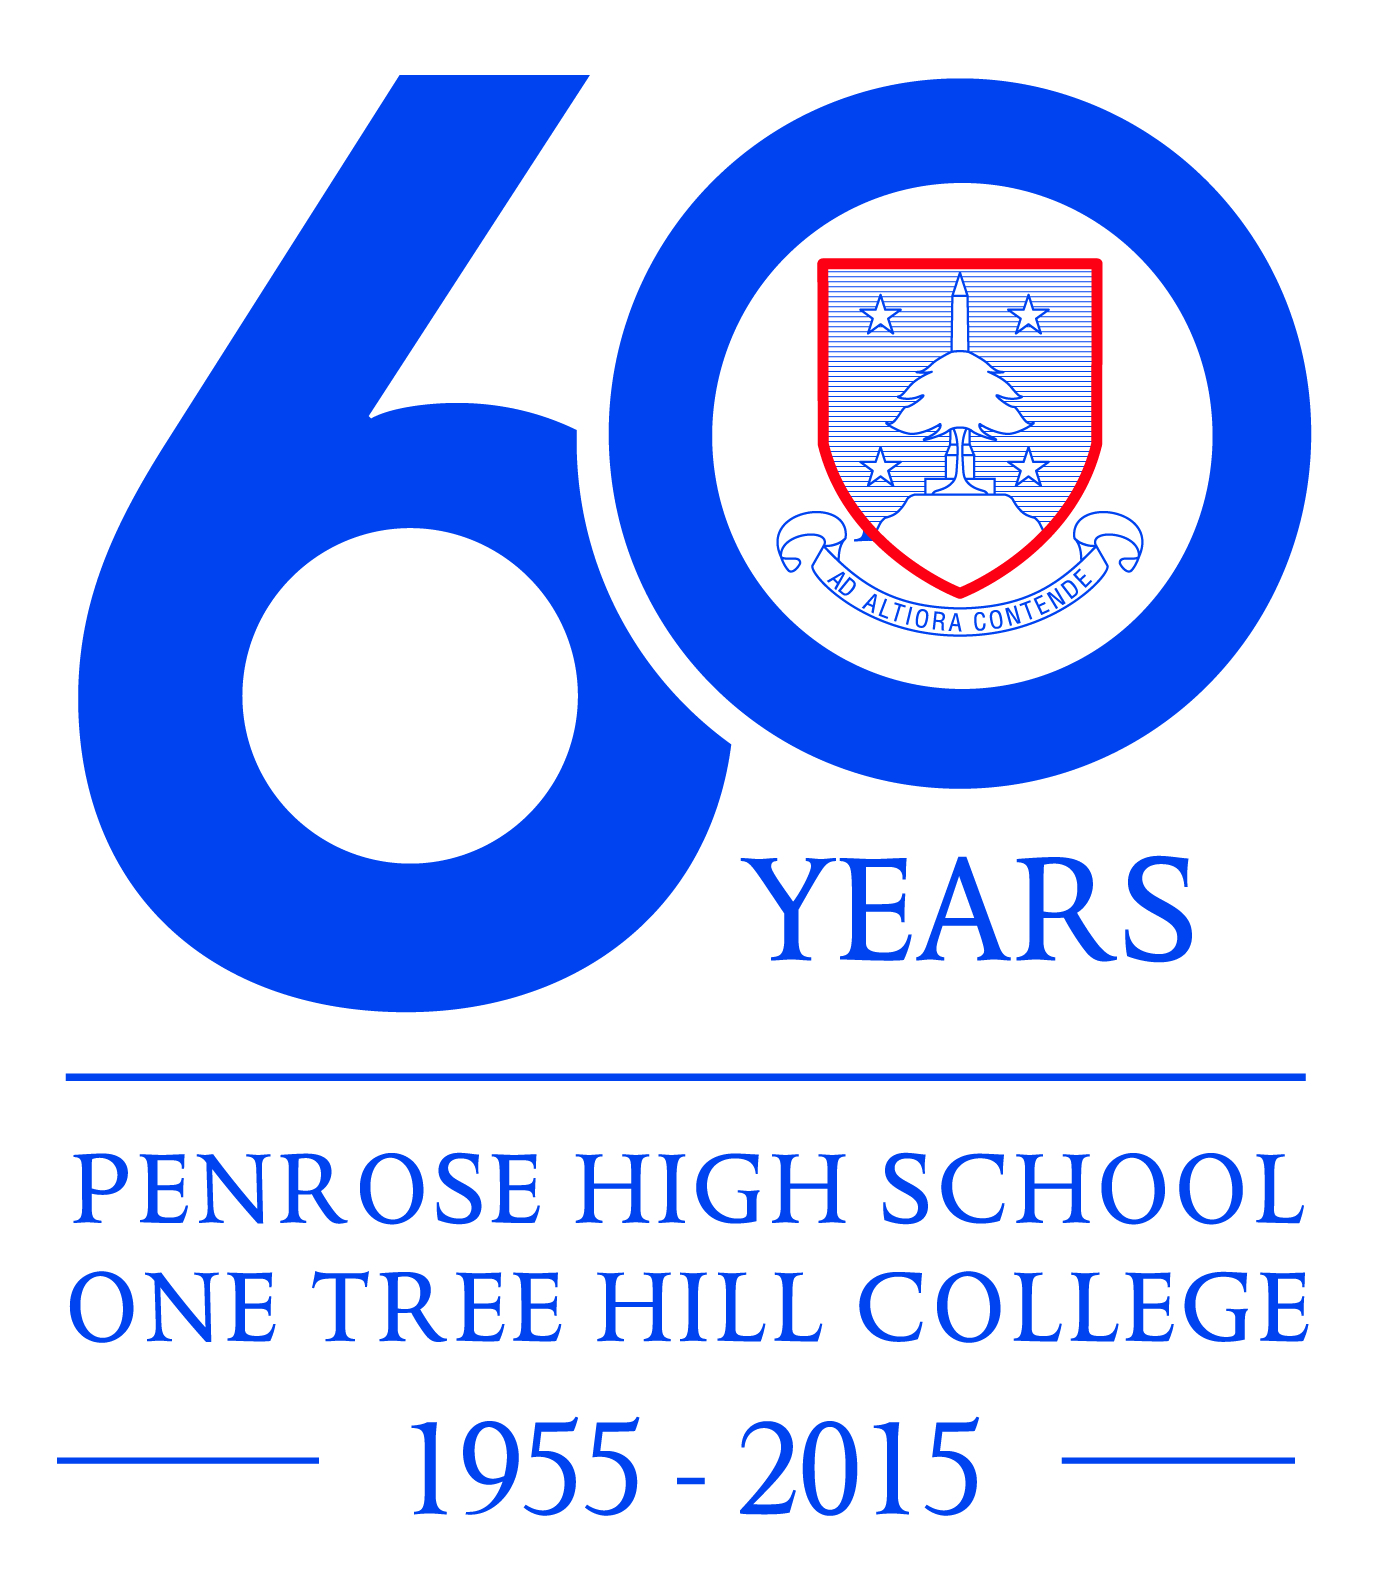 College High School: One Tree Hill College :: Celebrating 60 Years